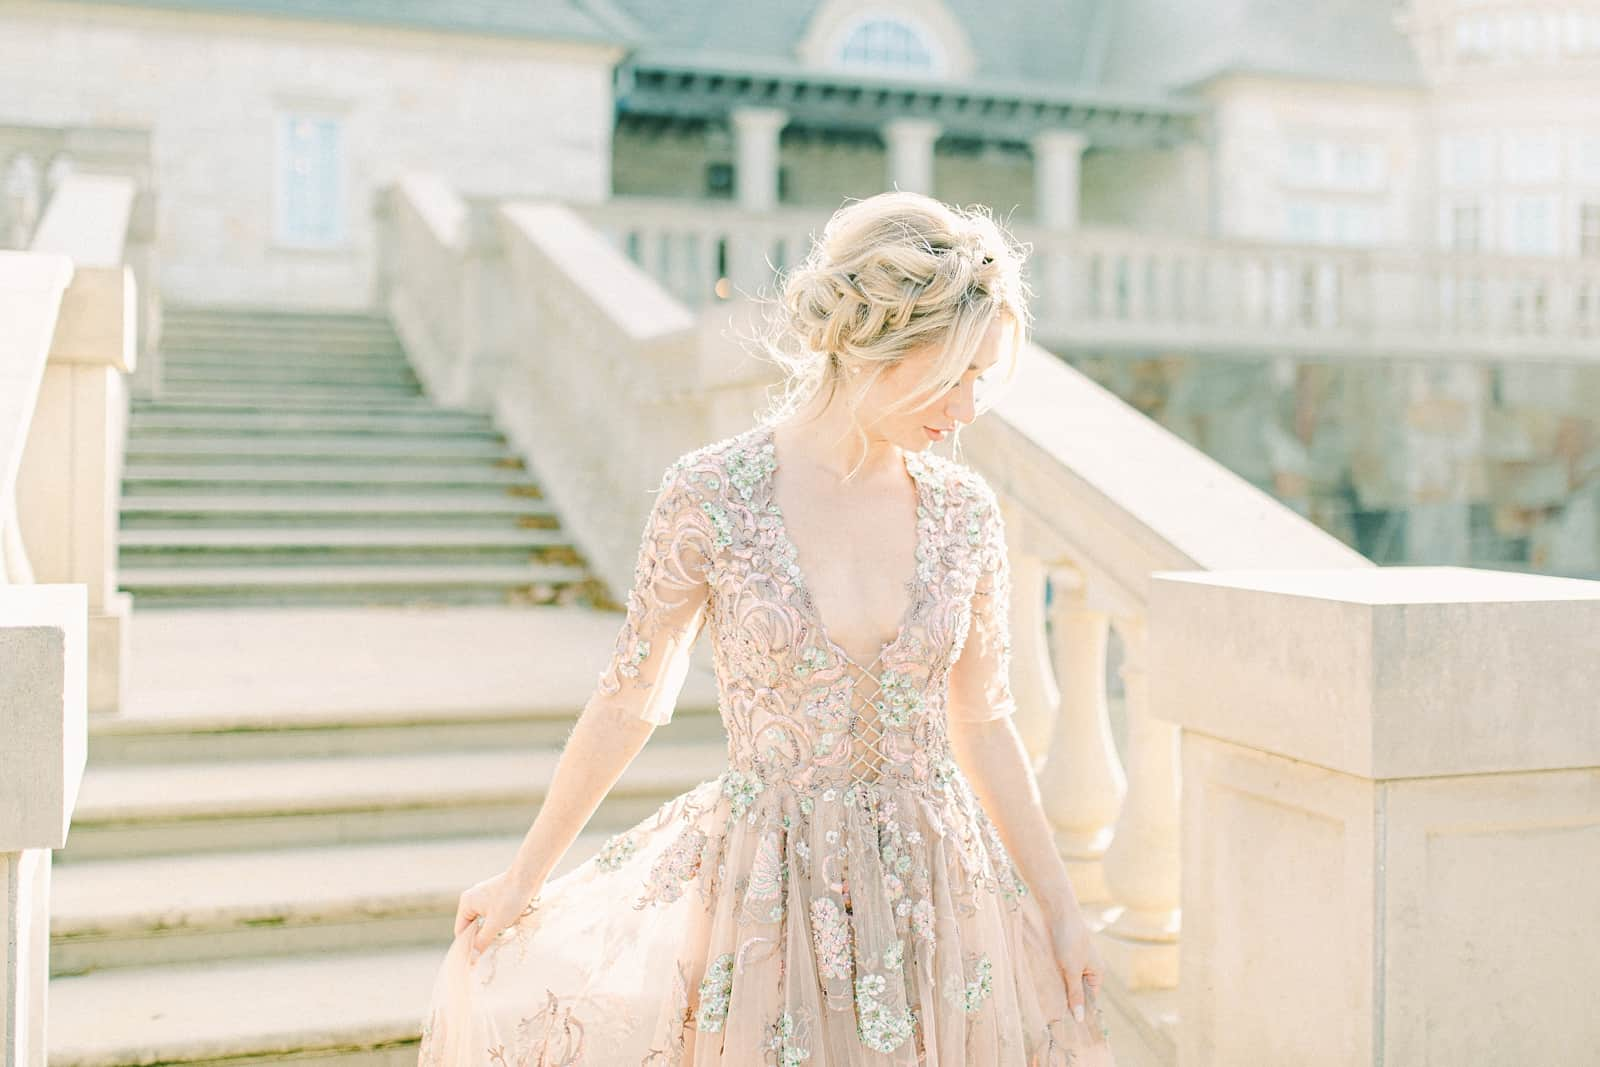 Bride wearing YSA Makino couture wedding dress with floral embellishments and embroidery, flowy wedding dress, European bride